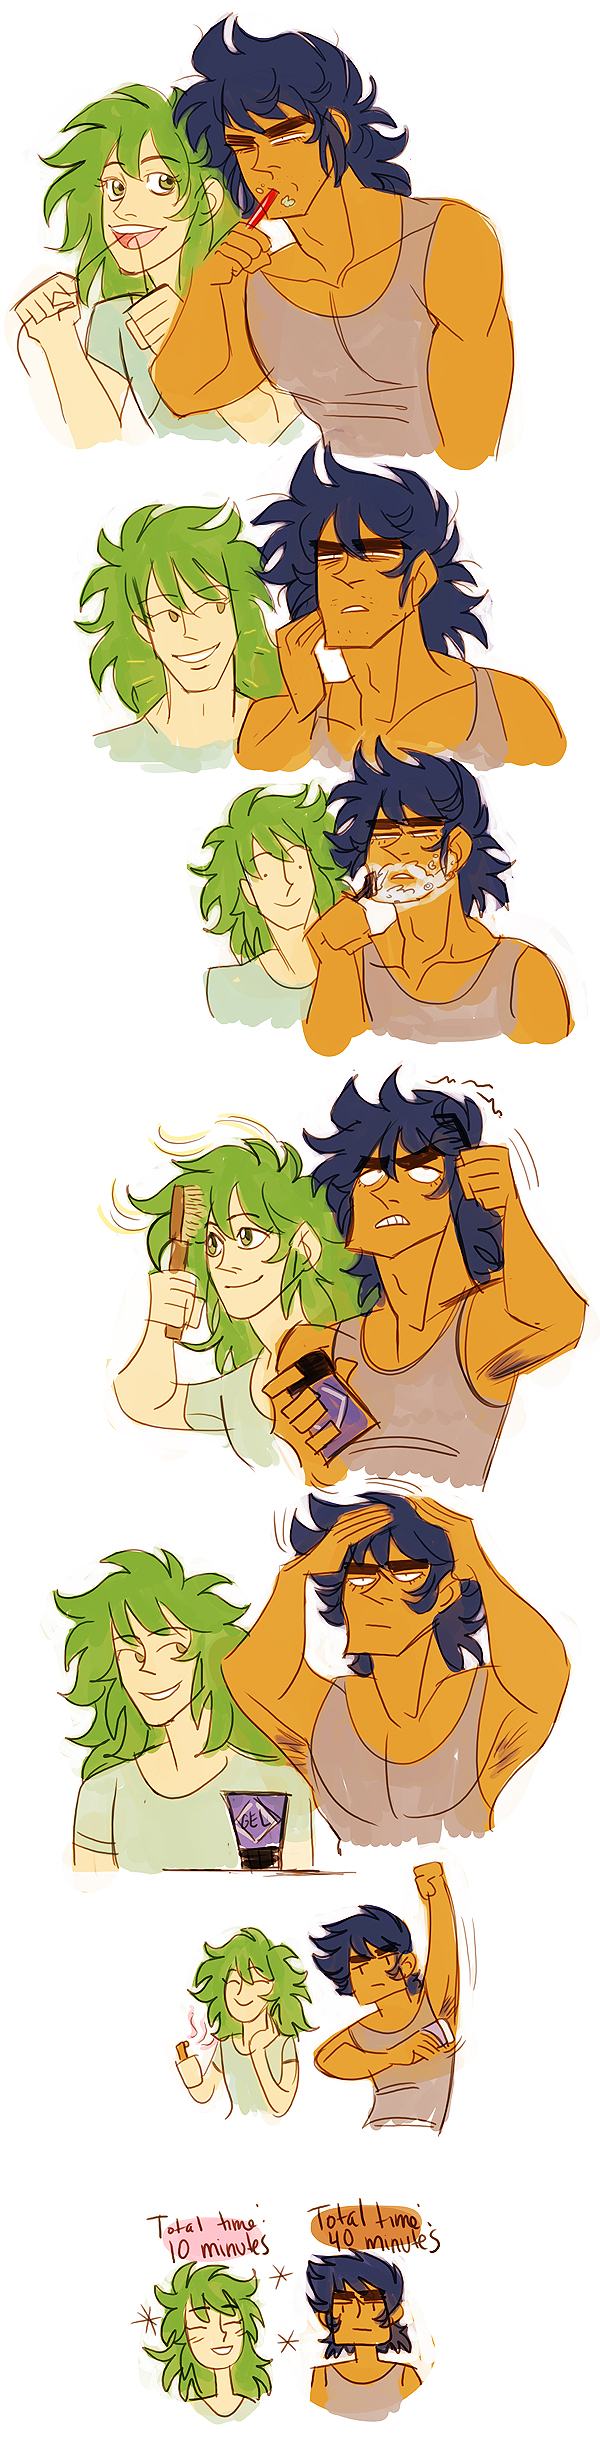 saint seiya - morning routine by spoonybards